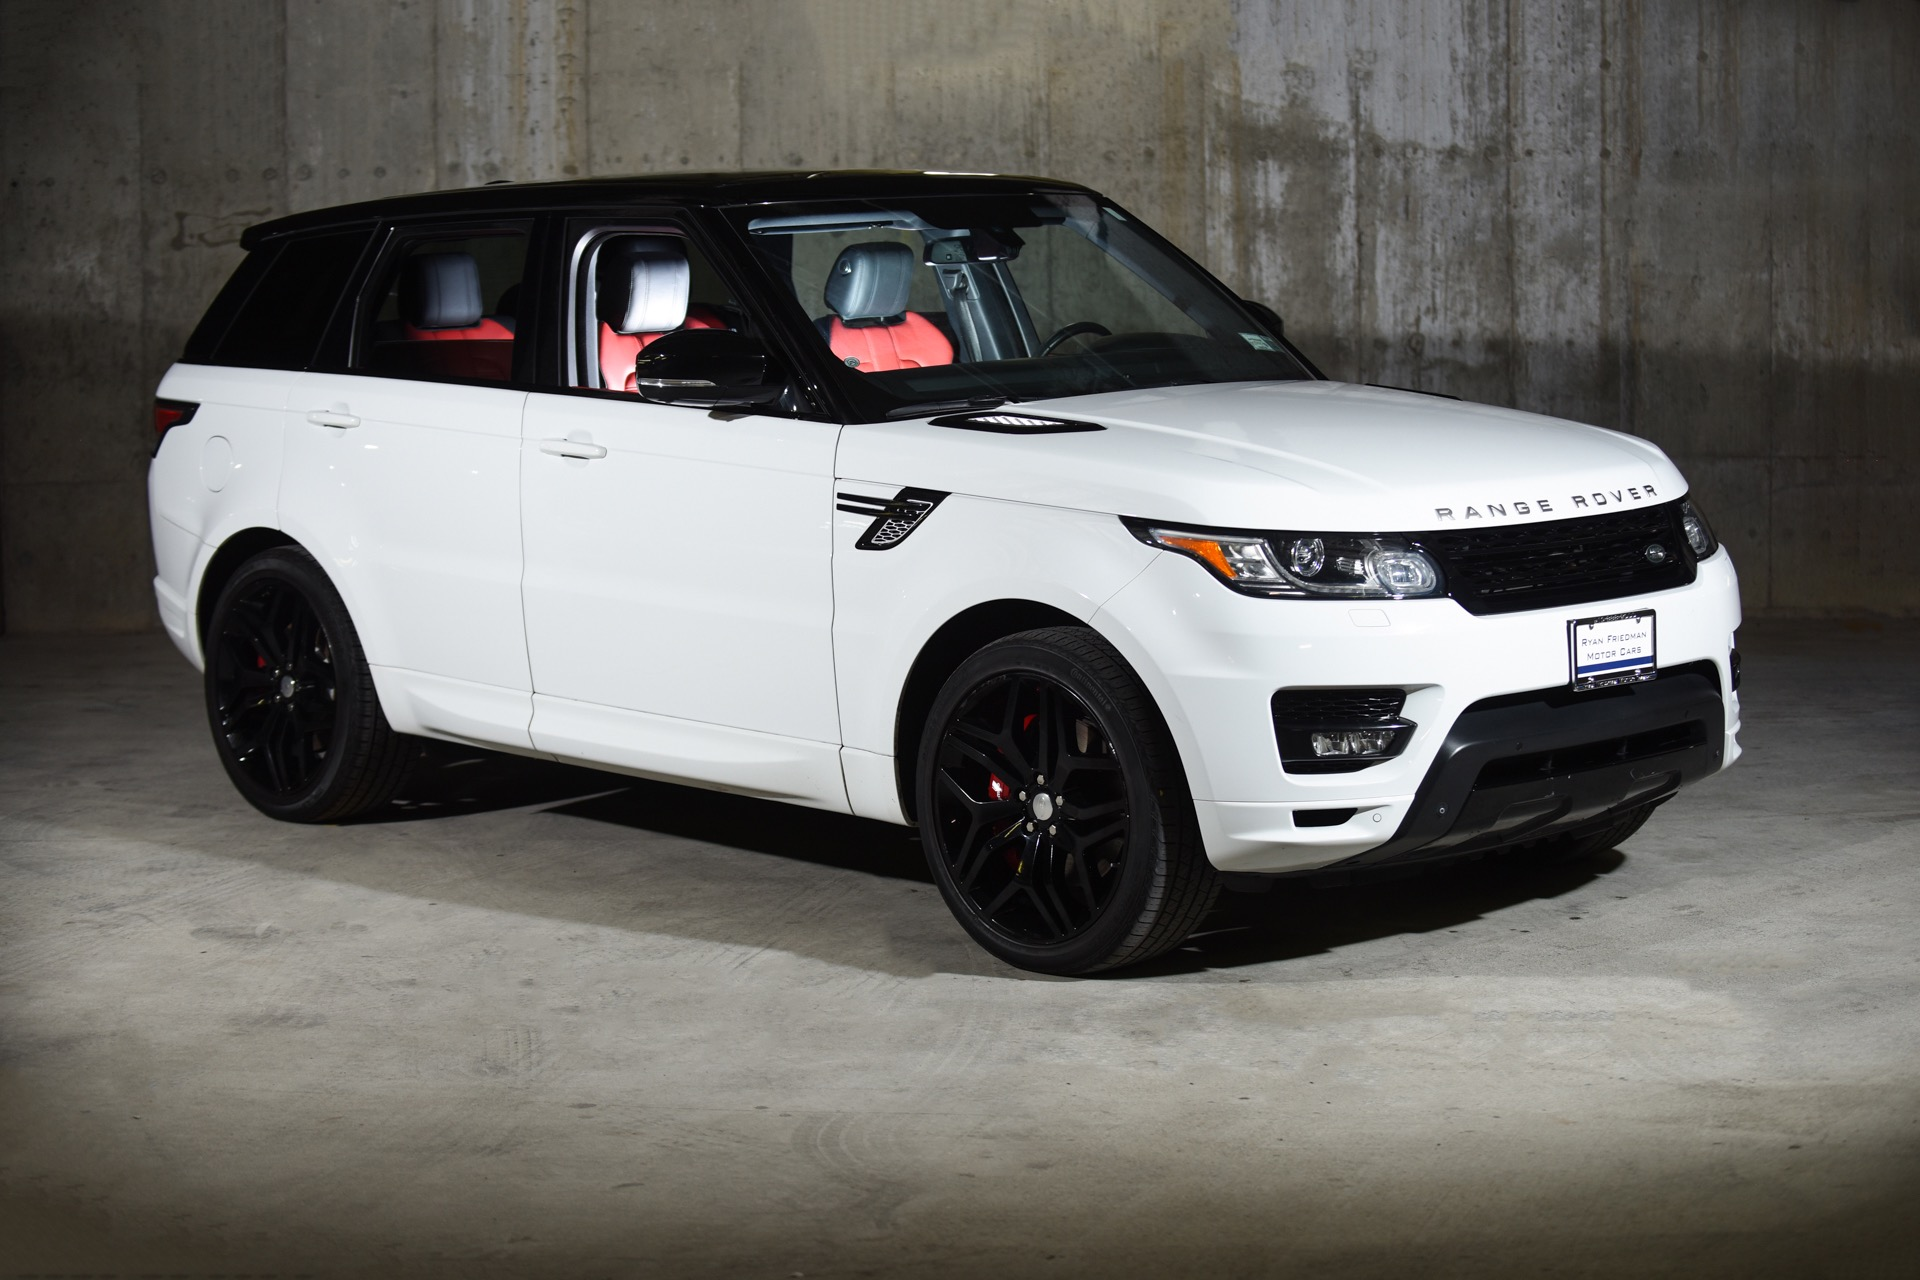 2014 land rover range rover sport autobiography stock 149c for sale near valley stream ny. Black Bedroom Furniture Sets. Home Design Ideas